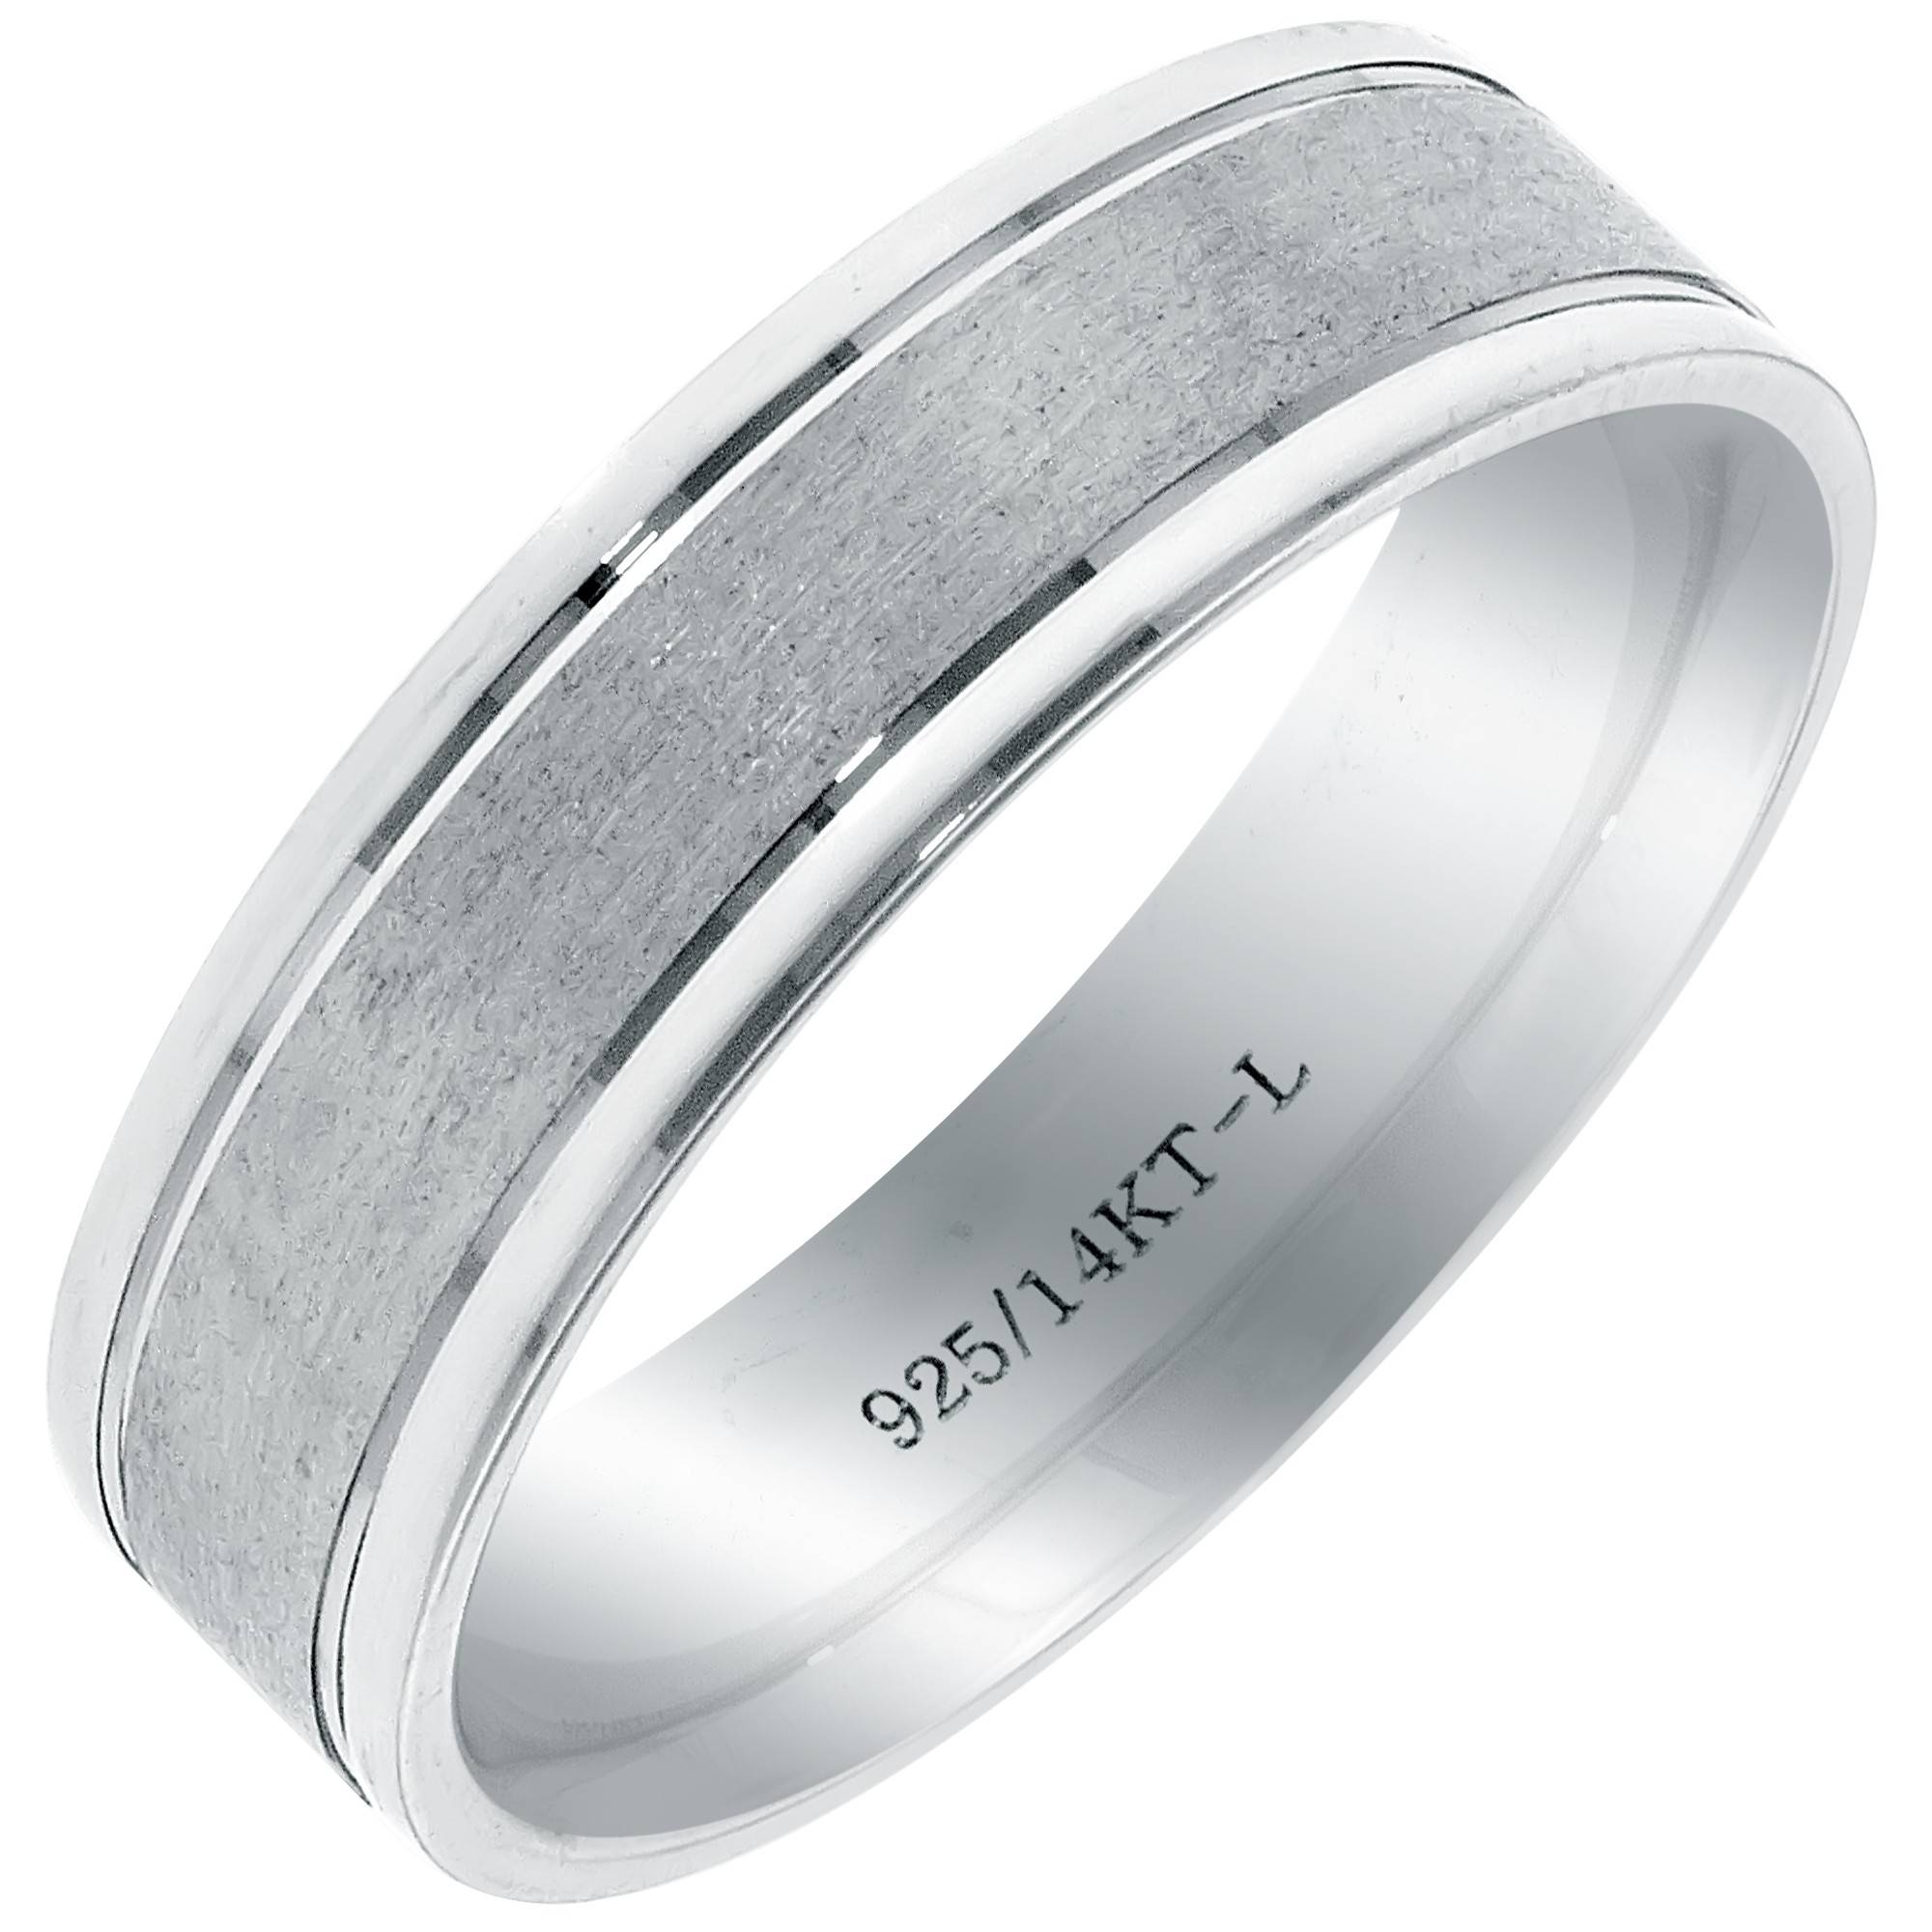 Bond2 Mens Wedding Band In 14Kt White Gold And Sterling Silver (6Mm) Throughout Sterling Silver Wedding Bands For Him (View 2 of 15)